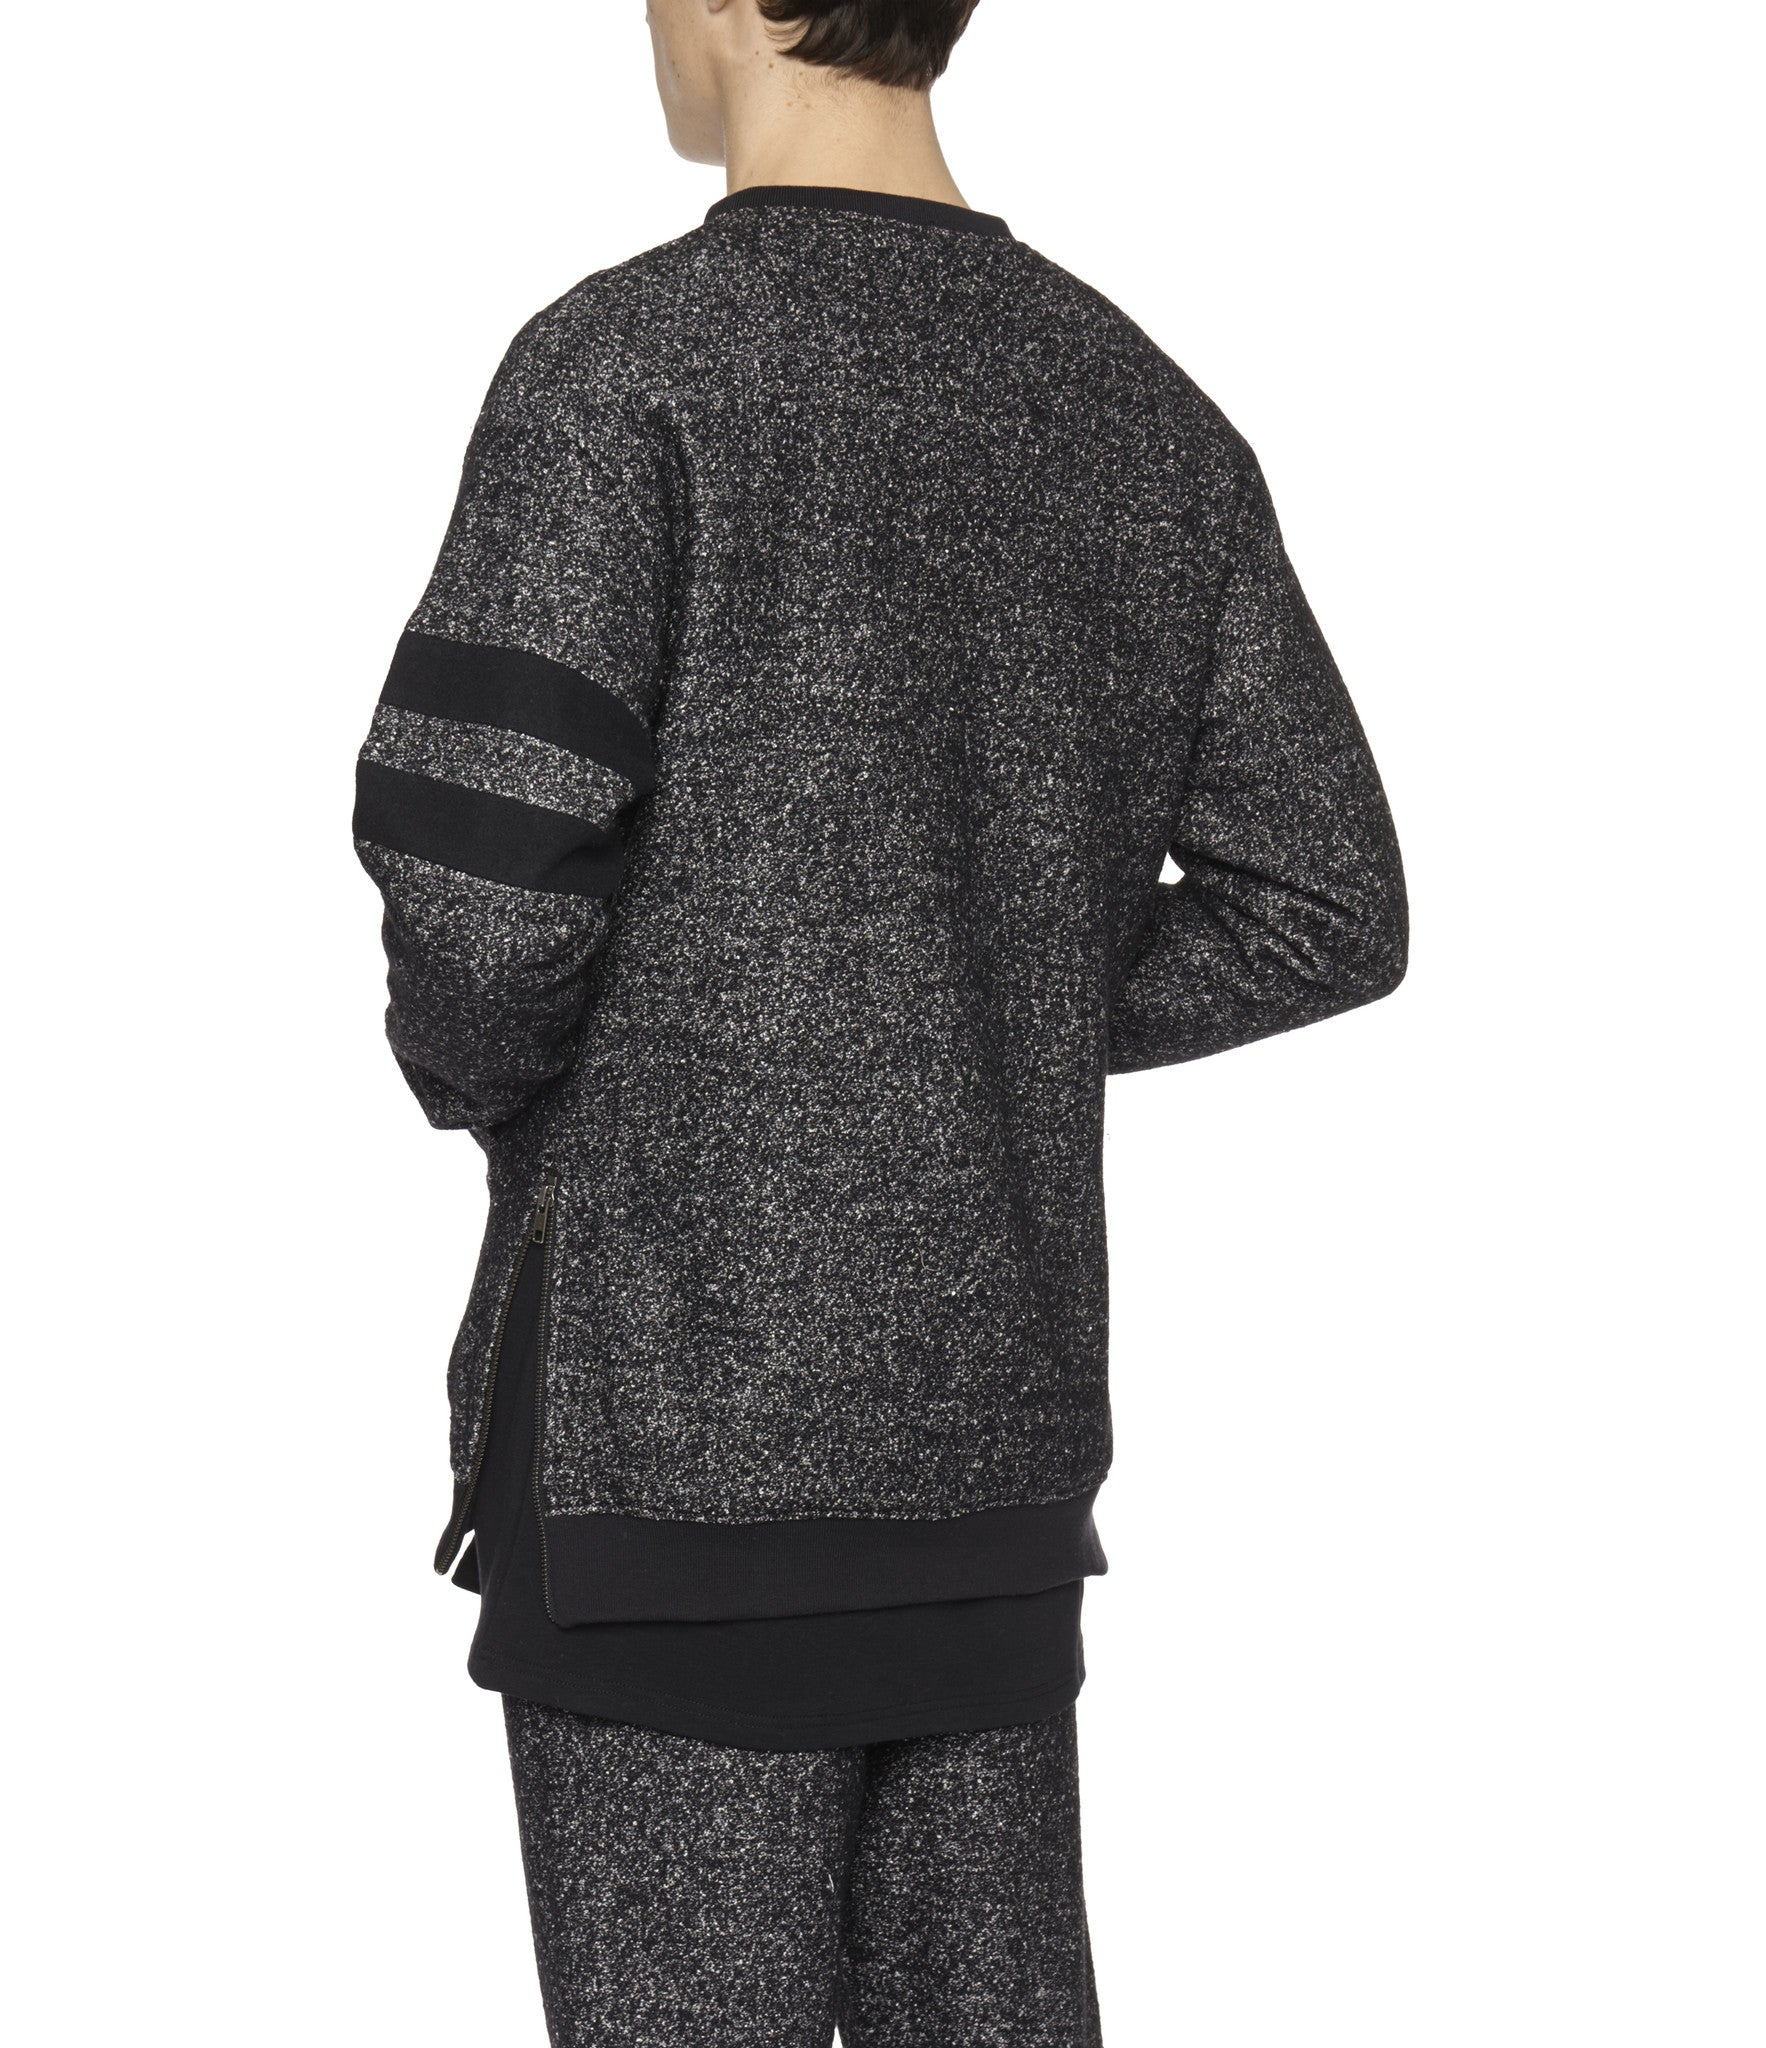 SW301 Oversized Mélange Wool Sweatshirt - Black - underated london - underatedco - 7